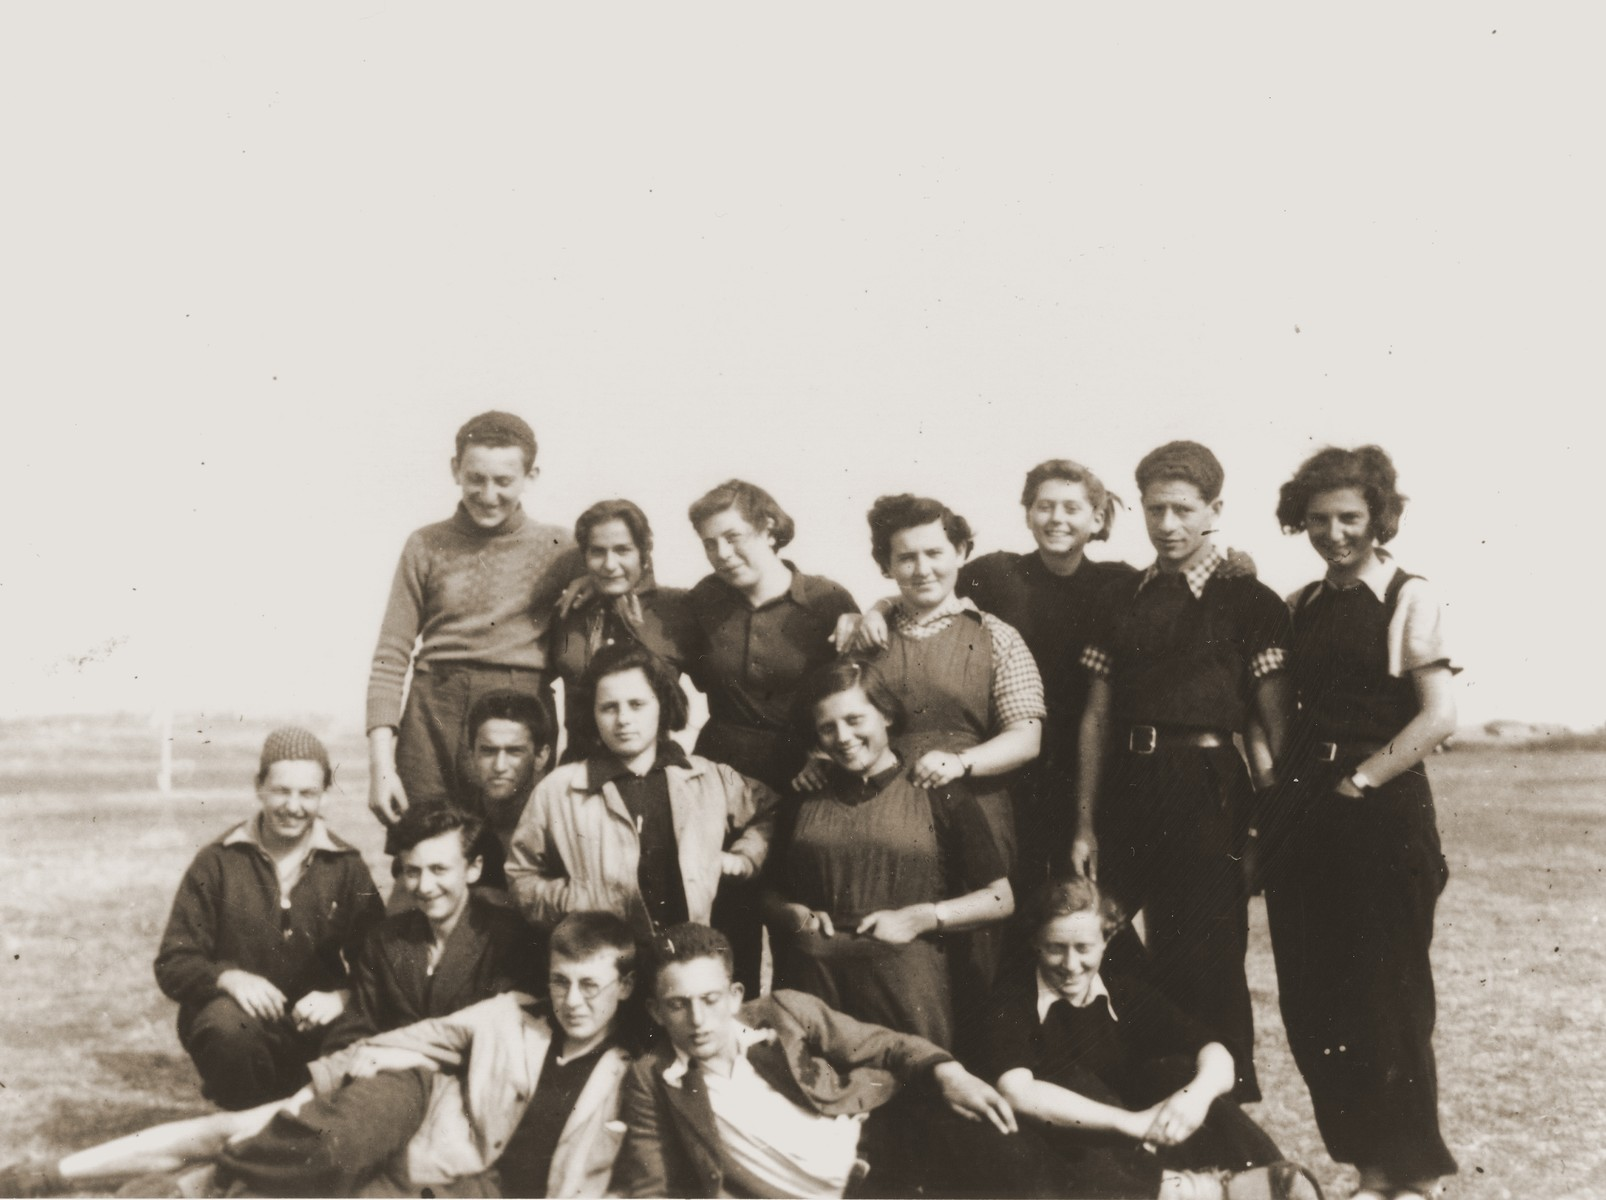 Group portrait of members of the Hashomer Hatzair Zionist youth group from the Kladovo transport.  Erich Nachhaeuser, the group's leader, is pictured standing second from the right.